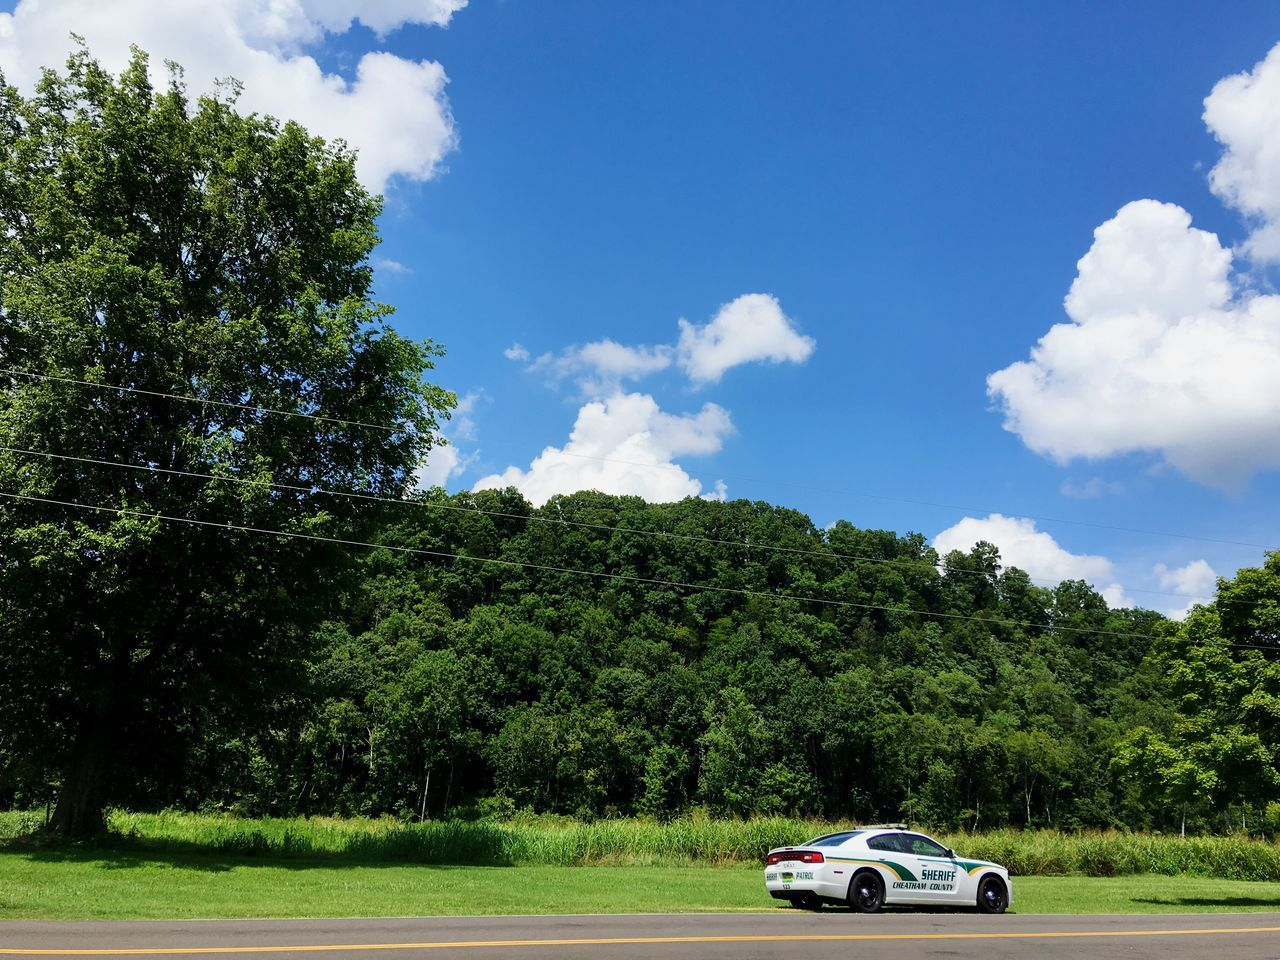 tree, sky, car, cloud - sky, land vehicle, transportation, day, field, green color, outdoors, growth, nature, grass, no people, beauty in nature